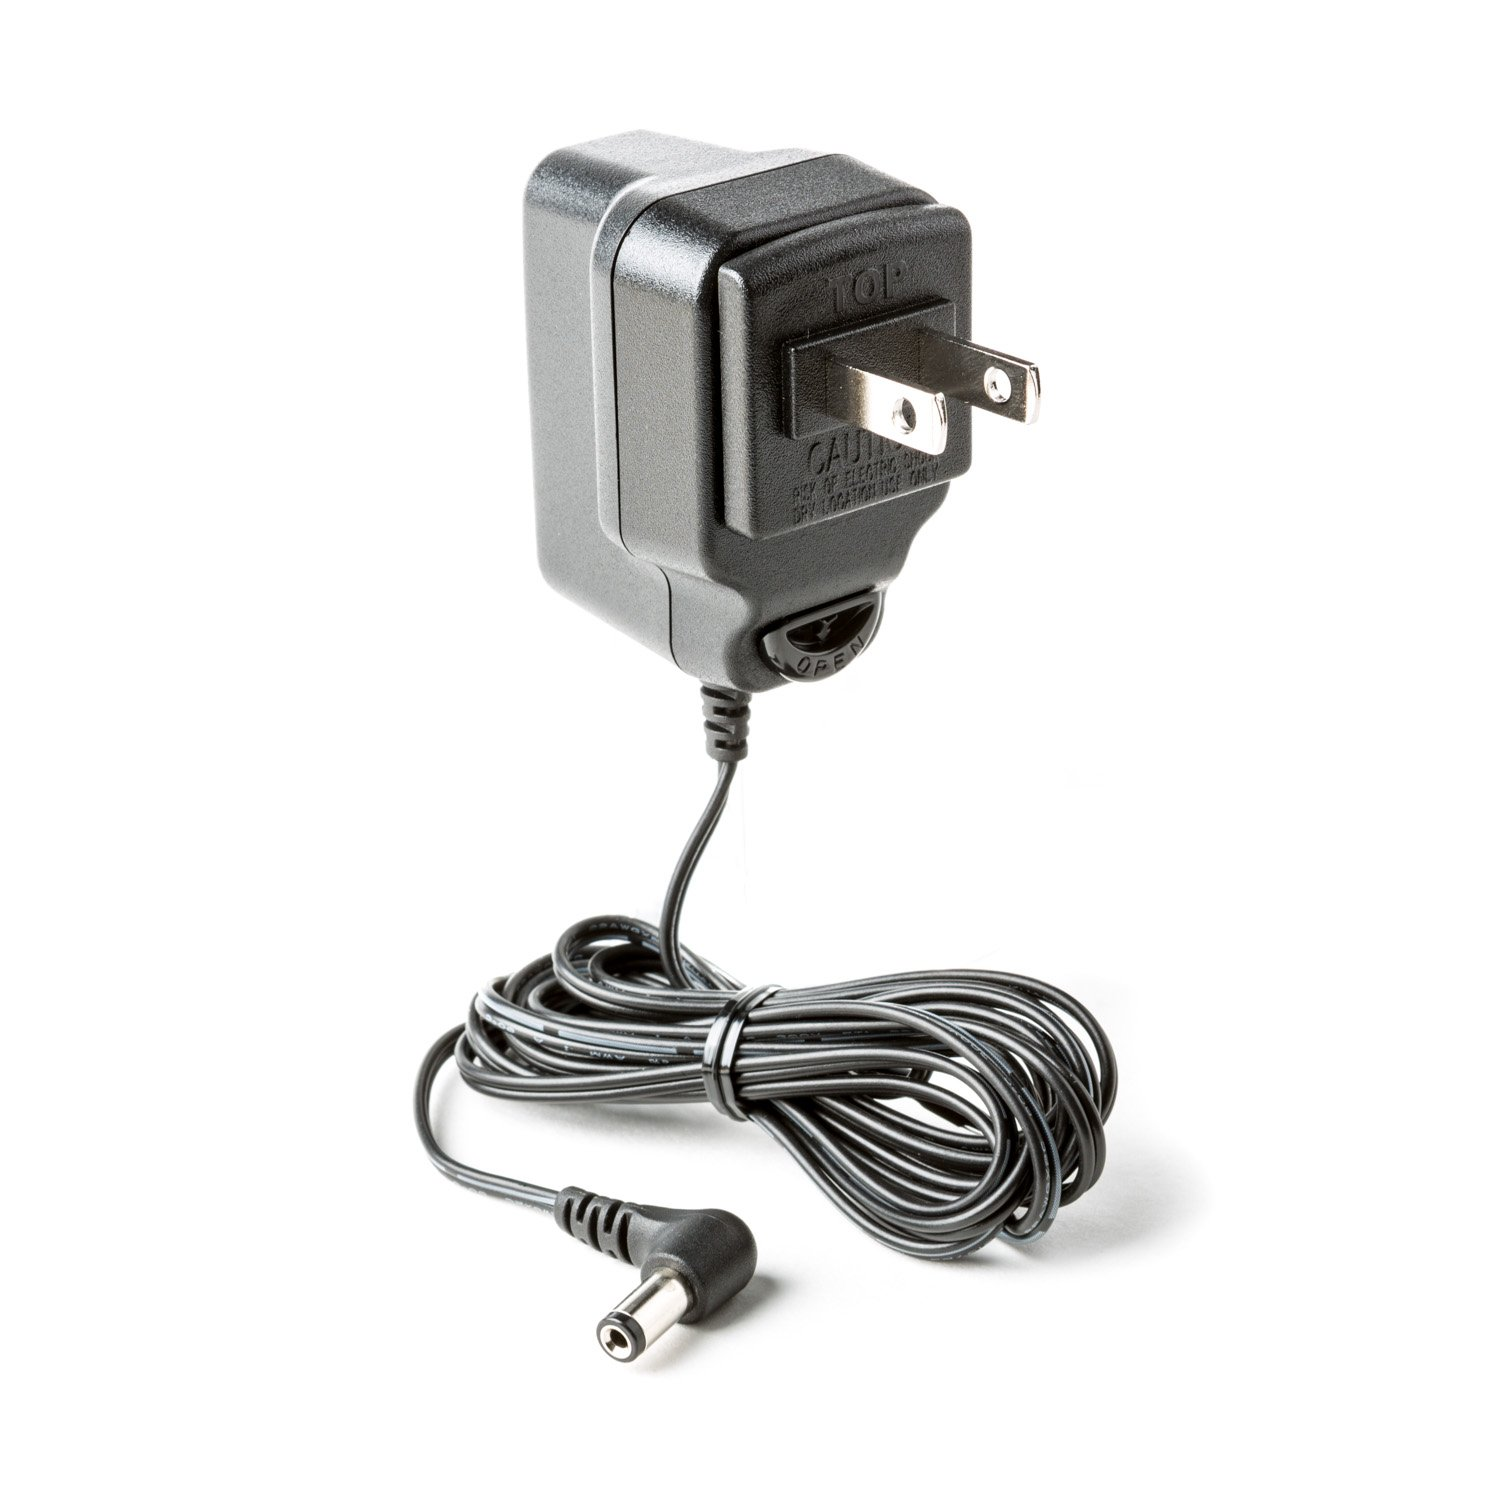 Dunlop AC 9V Power Adapter - Fits Most Pedals